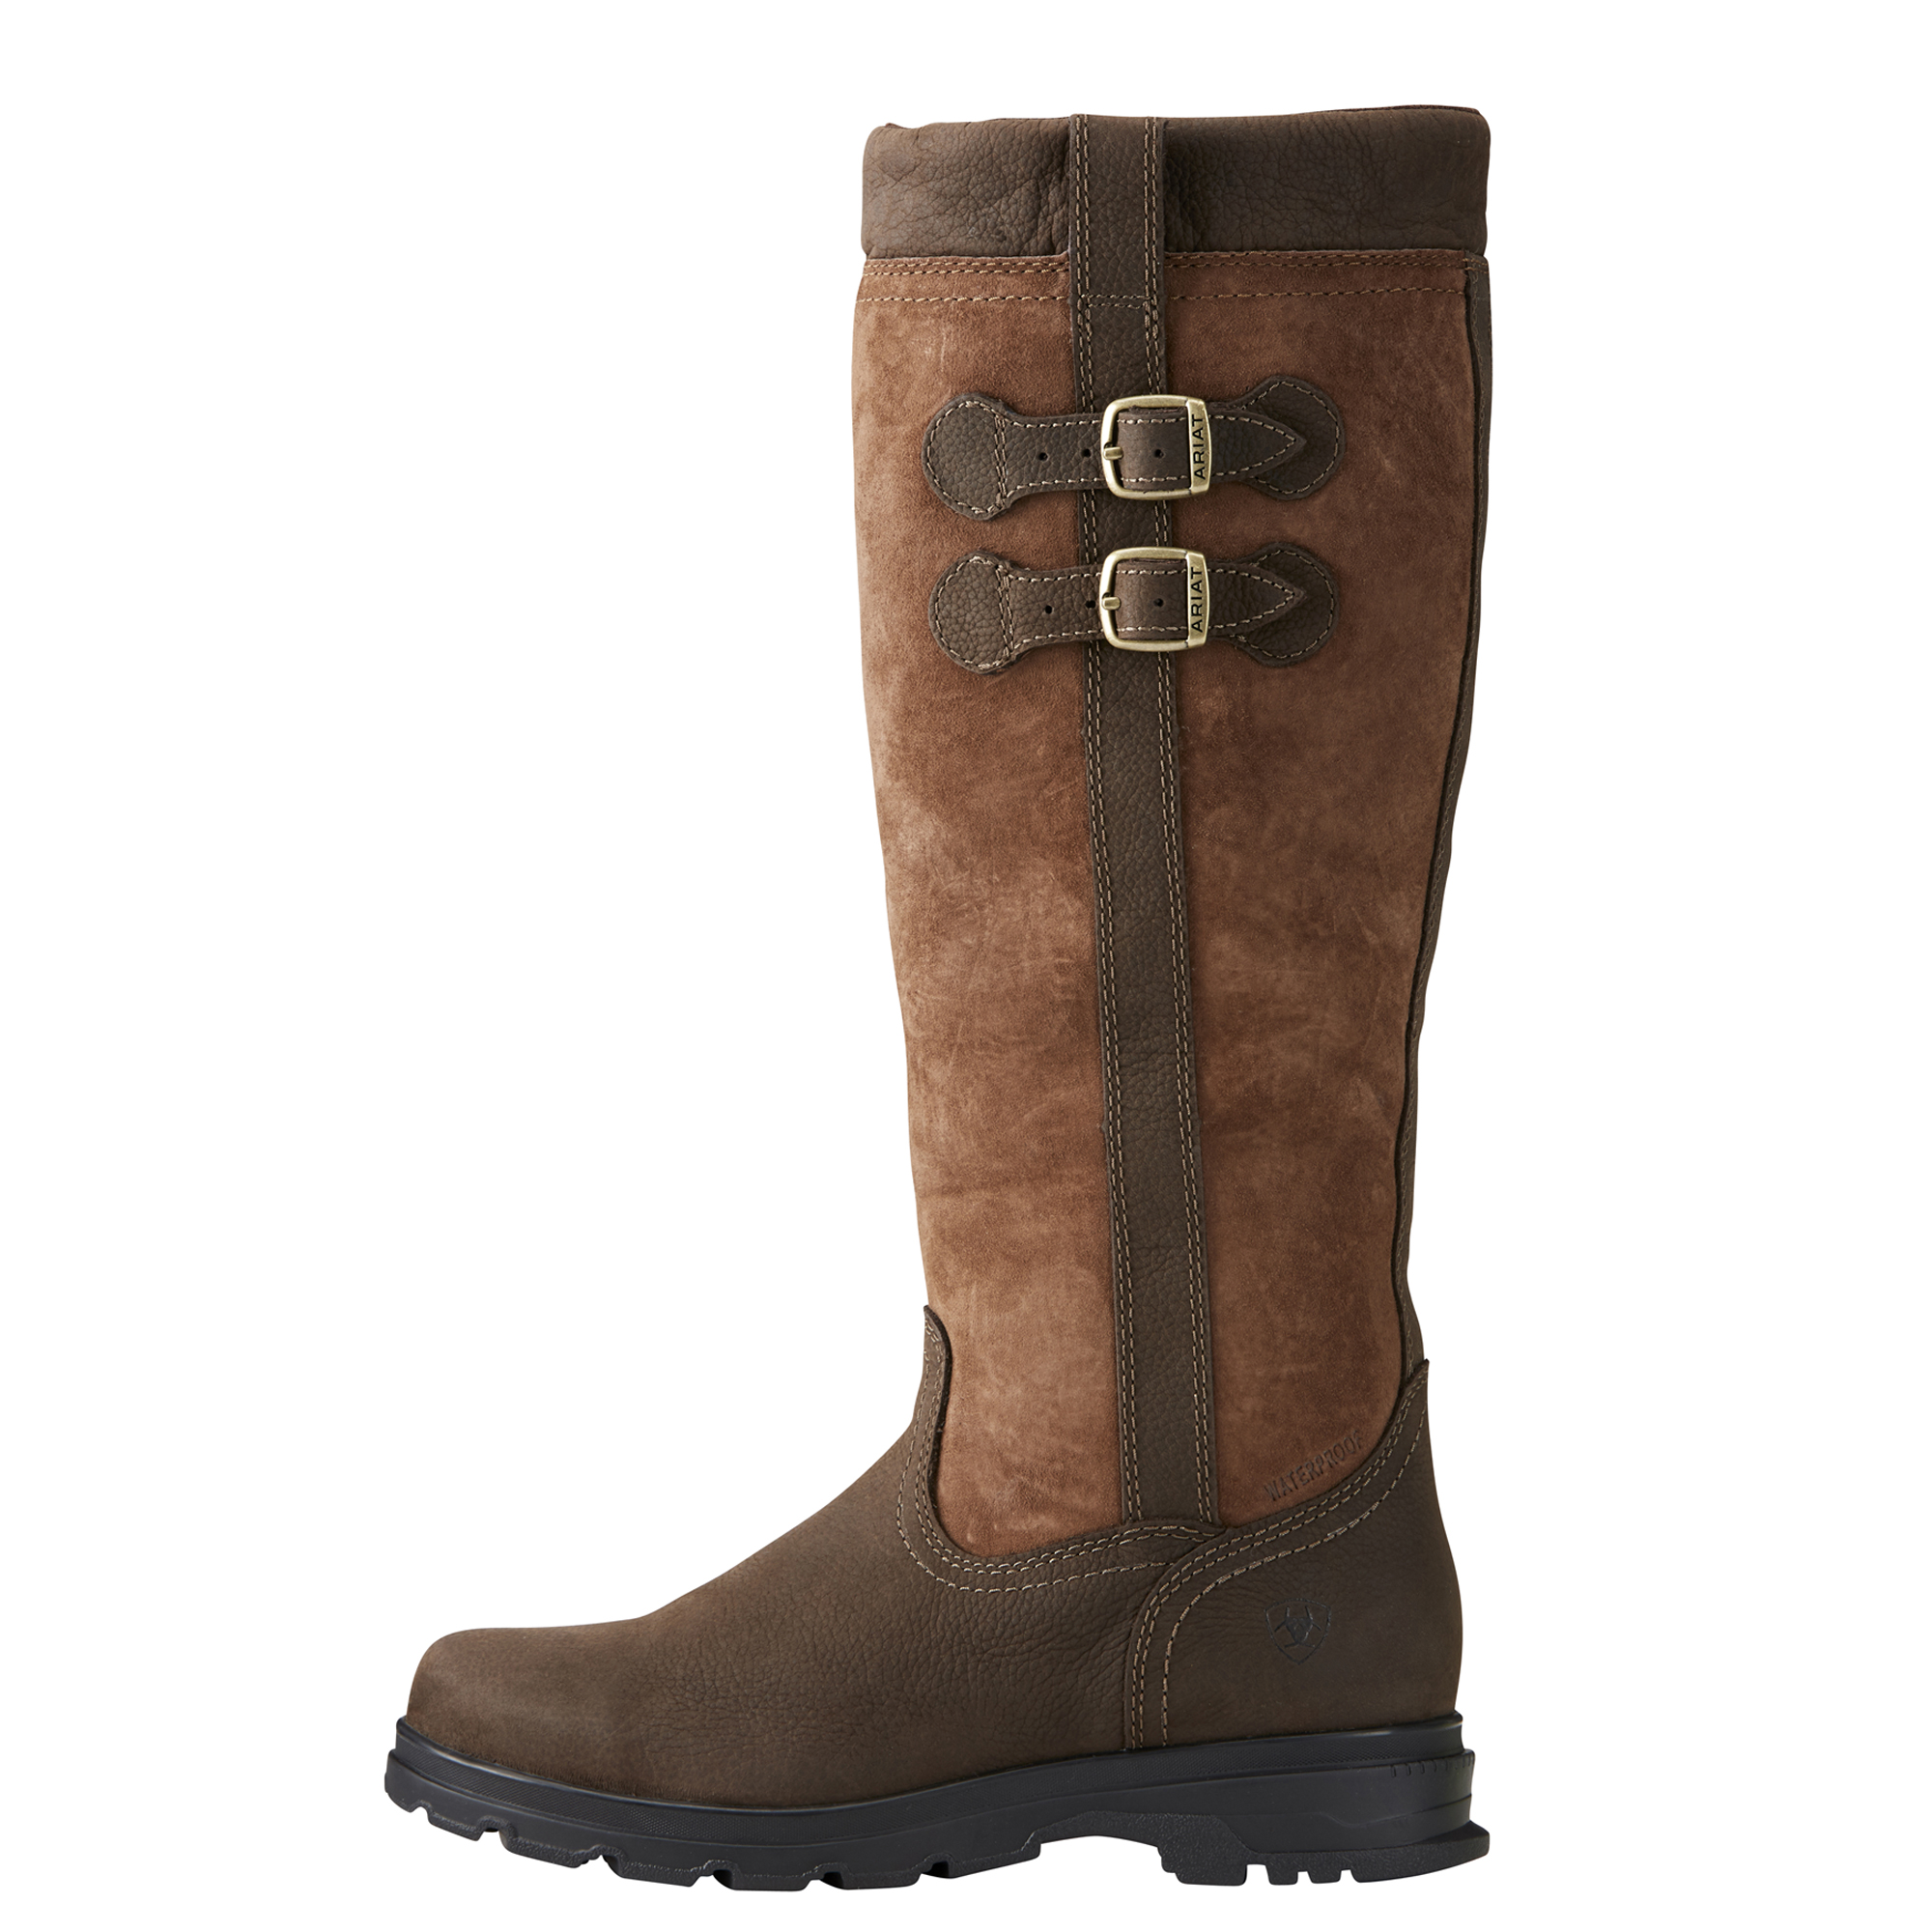 Ariat Eskdale Eskdale Ariat Da Donna in Pelle H20 stivali-marrone java a8de0e